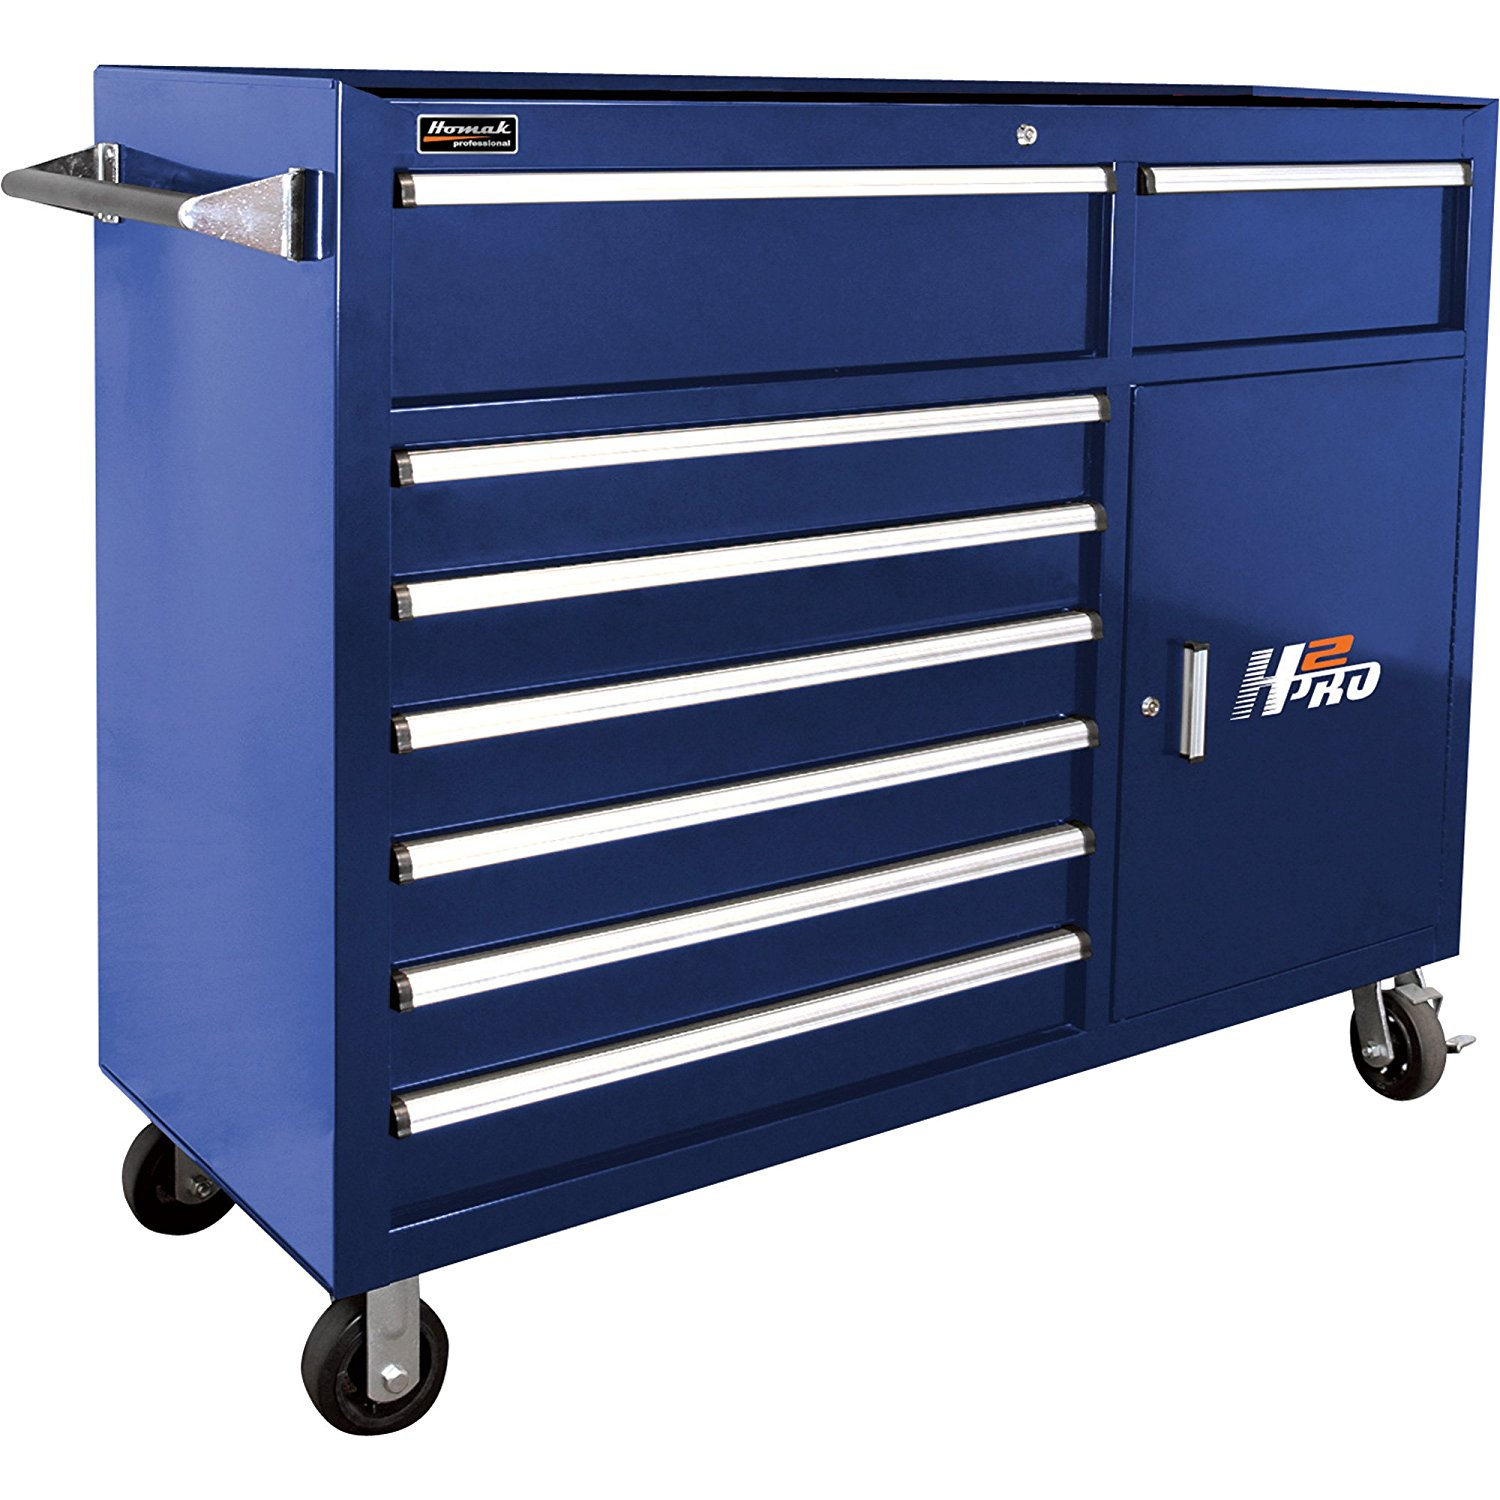 H2PRO Series 56-Inch 8-Drawer Roller Cabinet